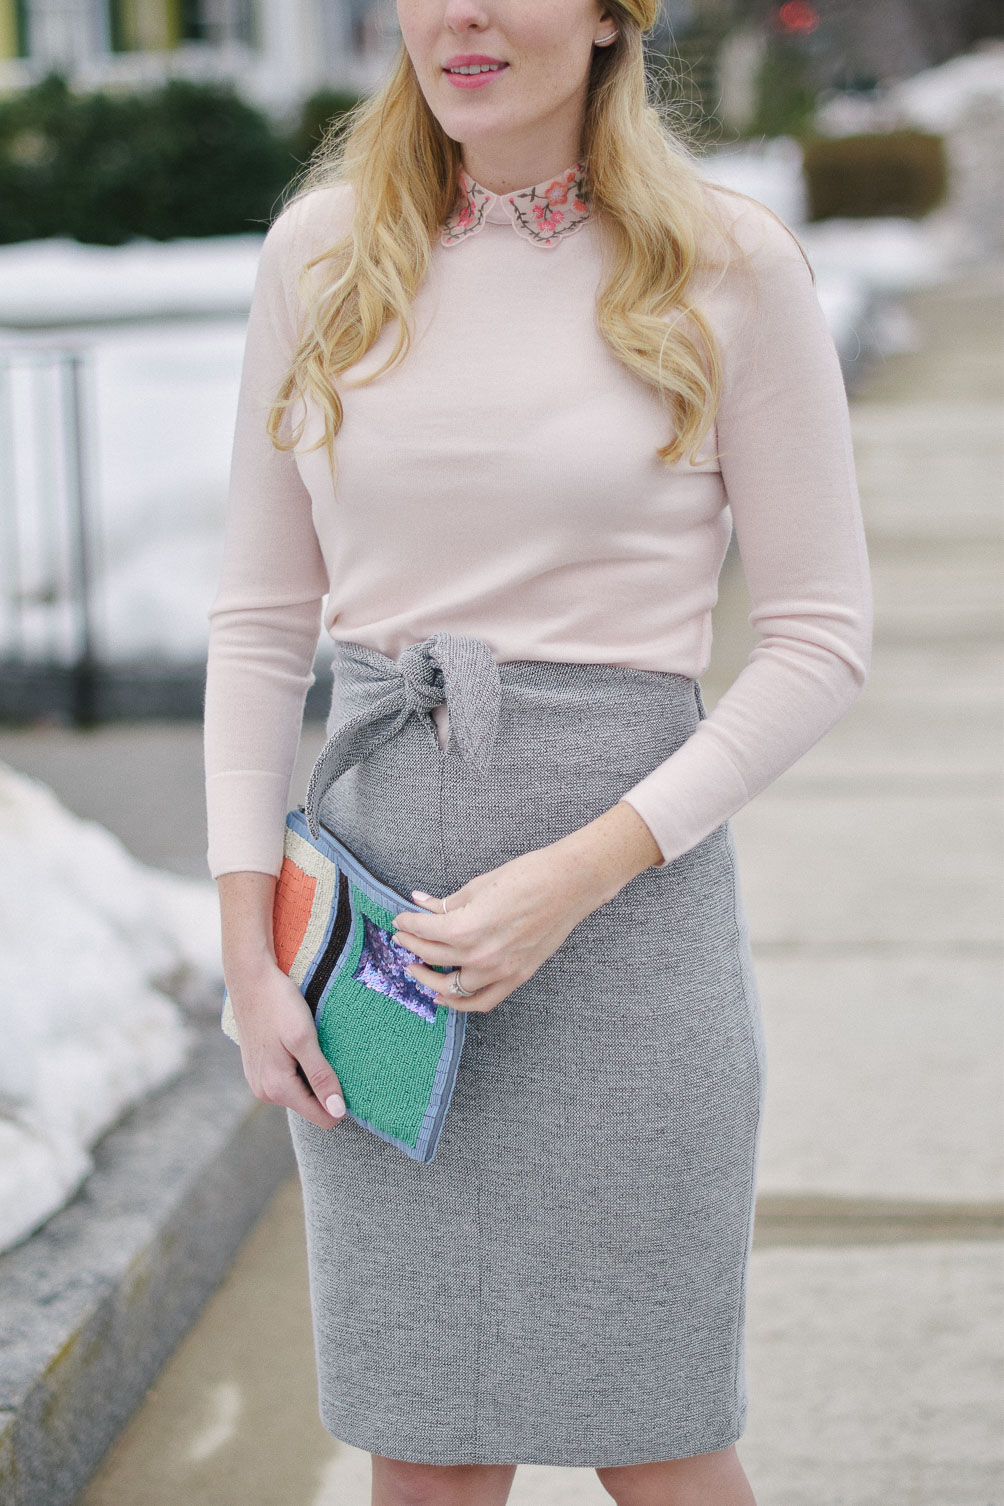 styling an embroidered collar sweater with tie waist skirt and beaded clutch